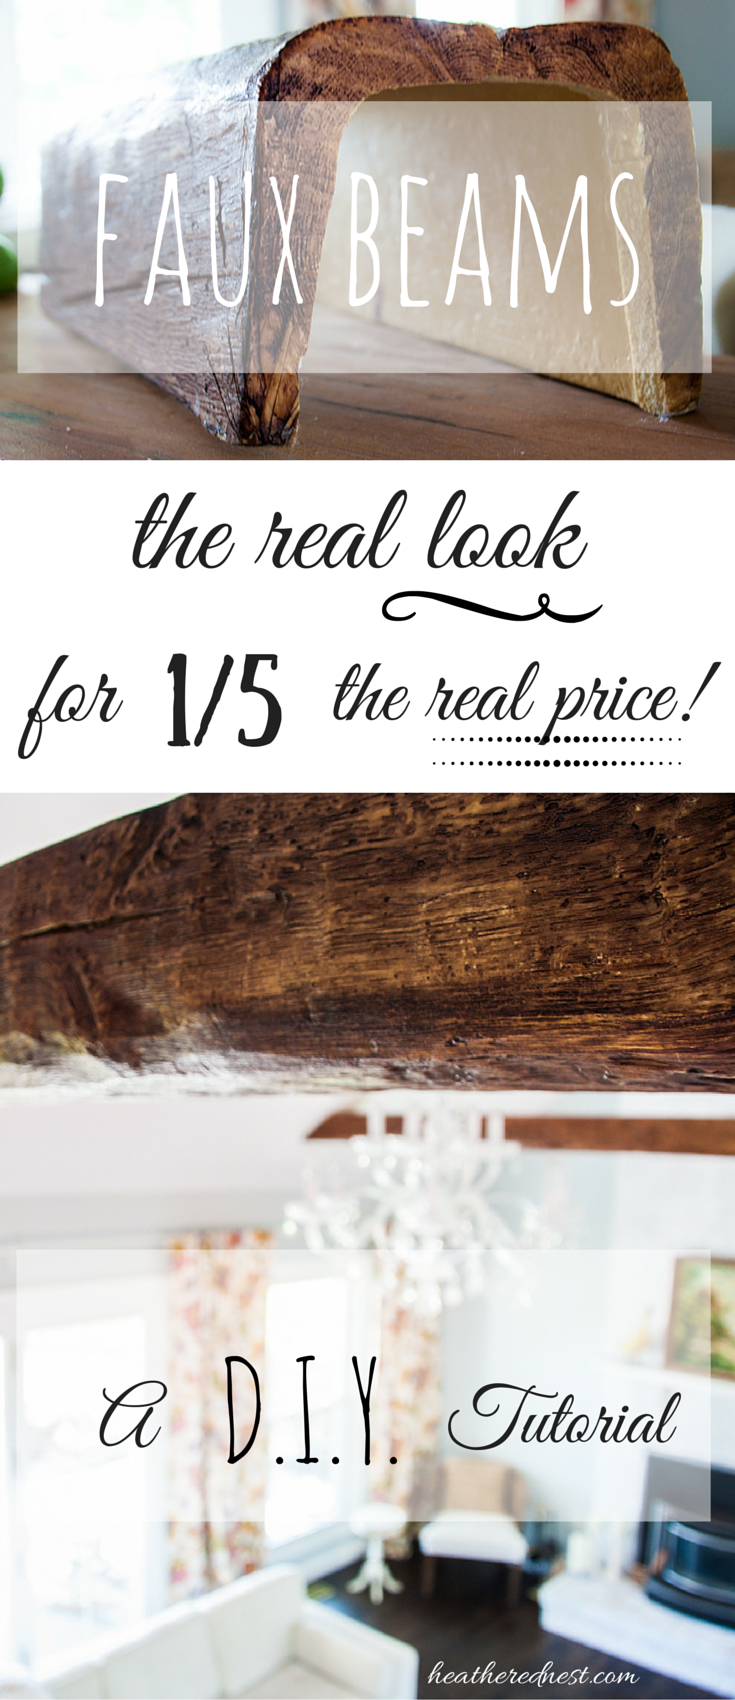 How to Install Faux Beams | Faux beams, Beams and Nest